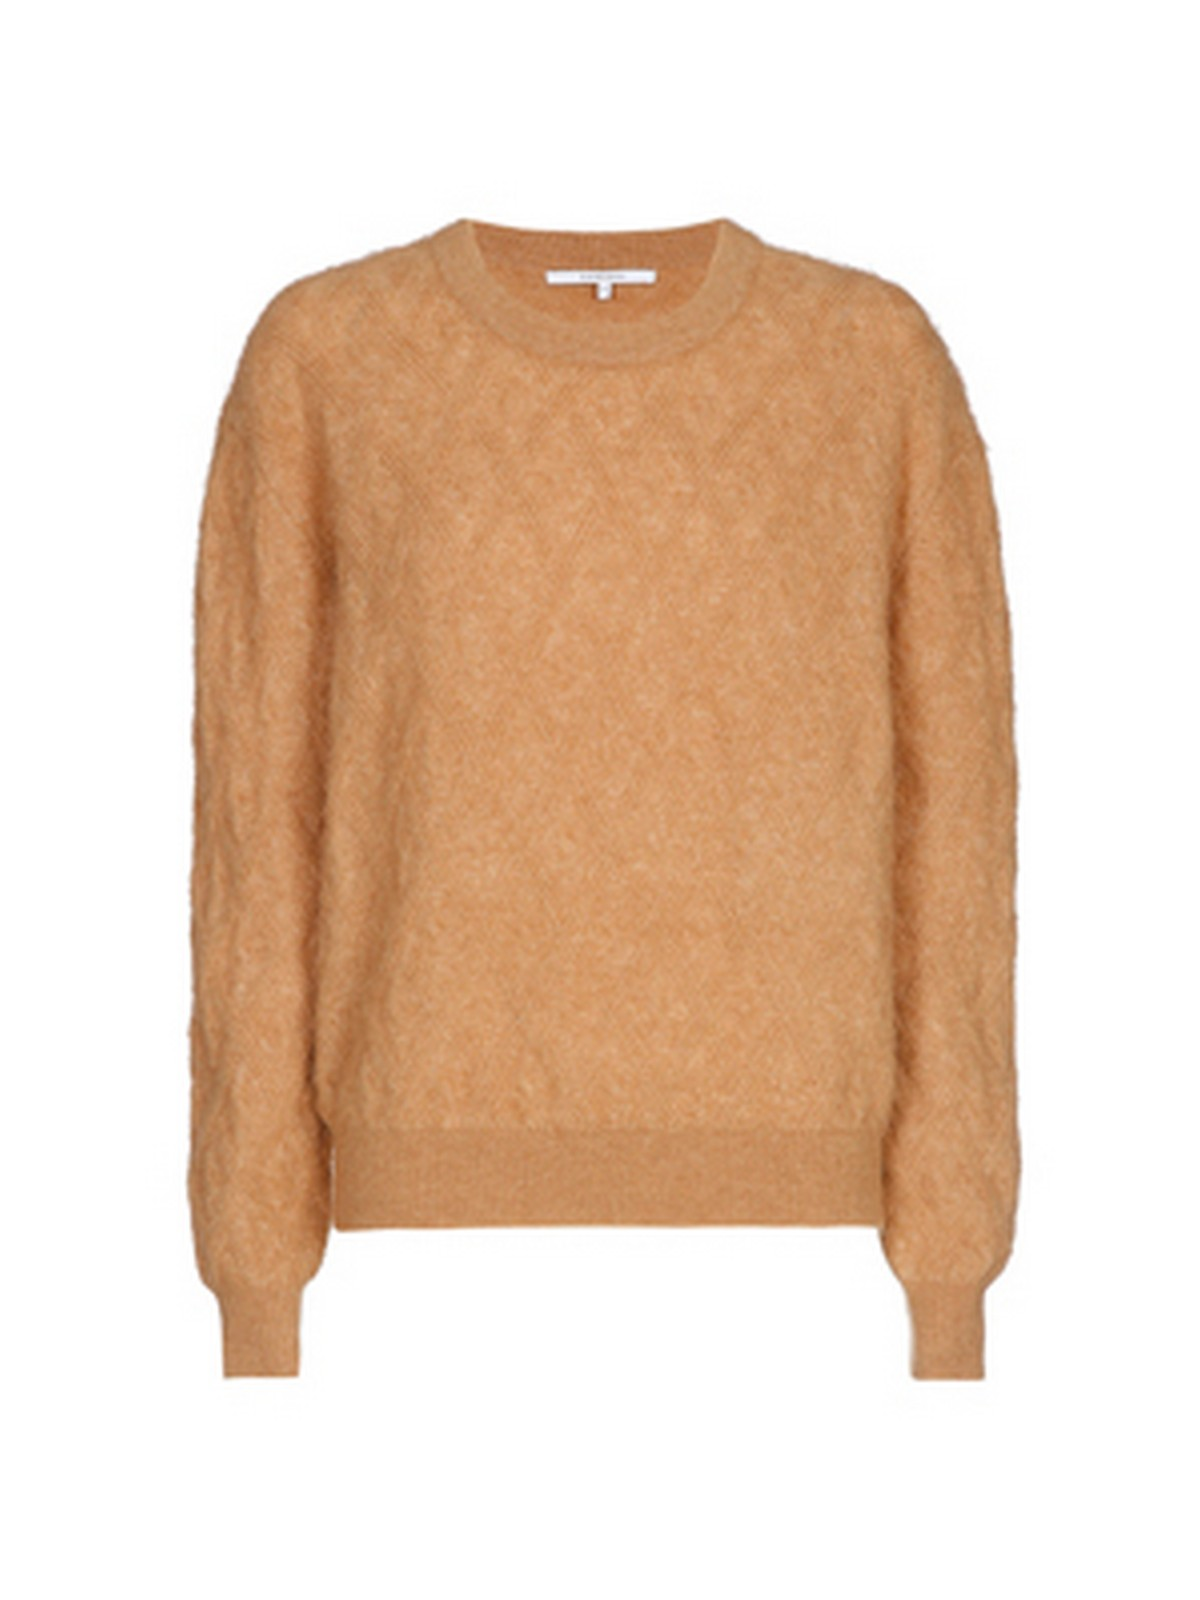 Xandres - Aribo - Pull toffee